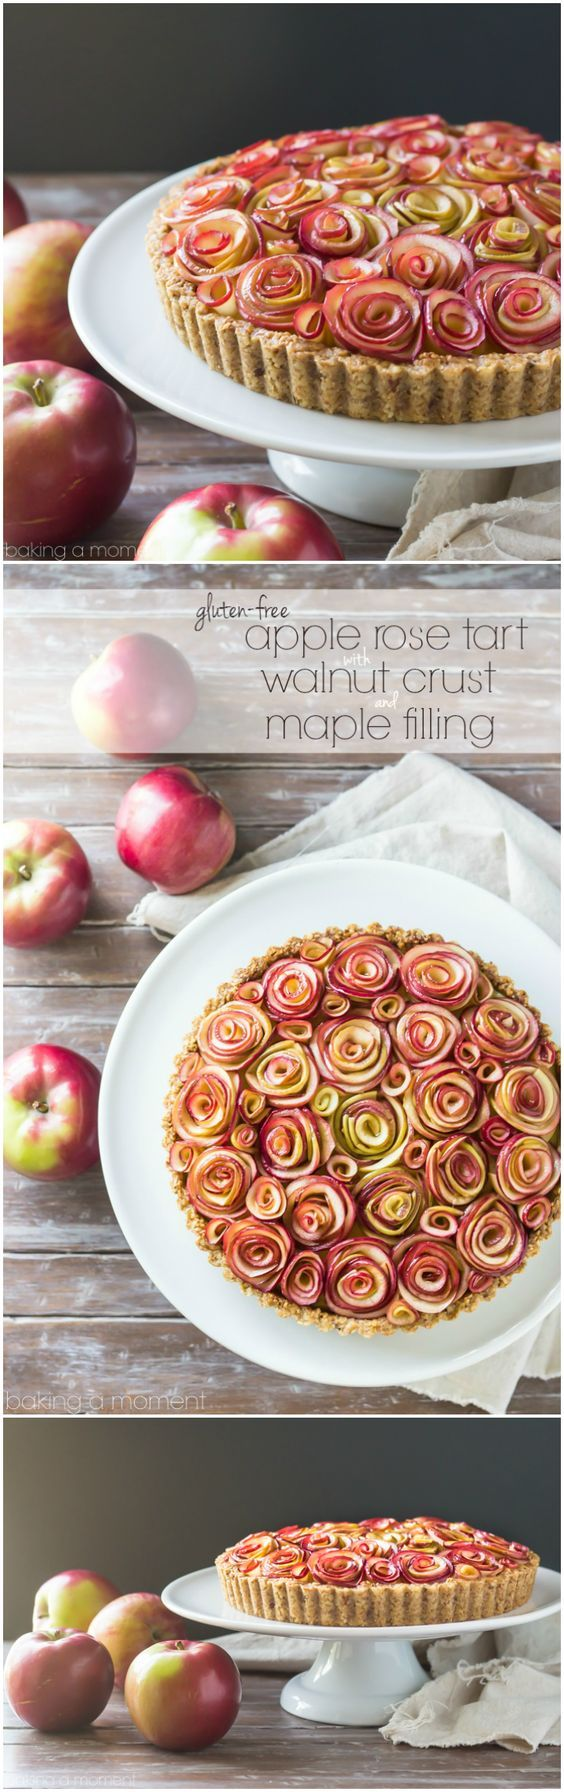 Your guests will be wowed by this gorgeous apple tart of roses with a toasty walnut crust and a silky sweet maple custard filling. And it's gluten-free!